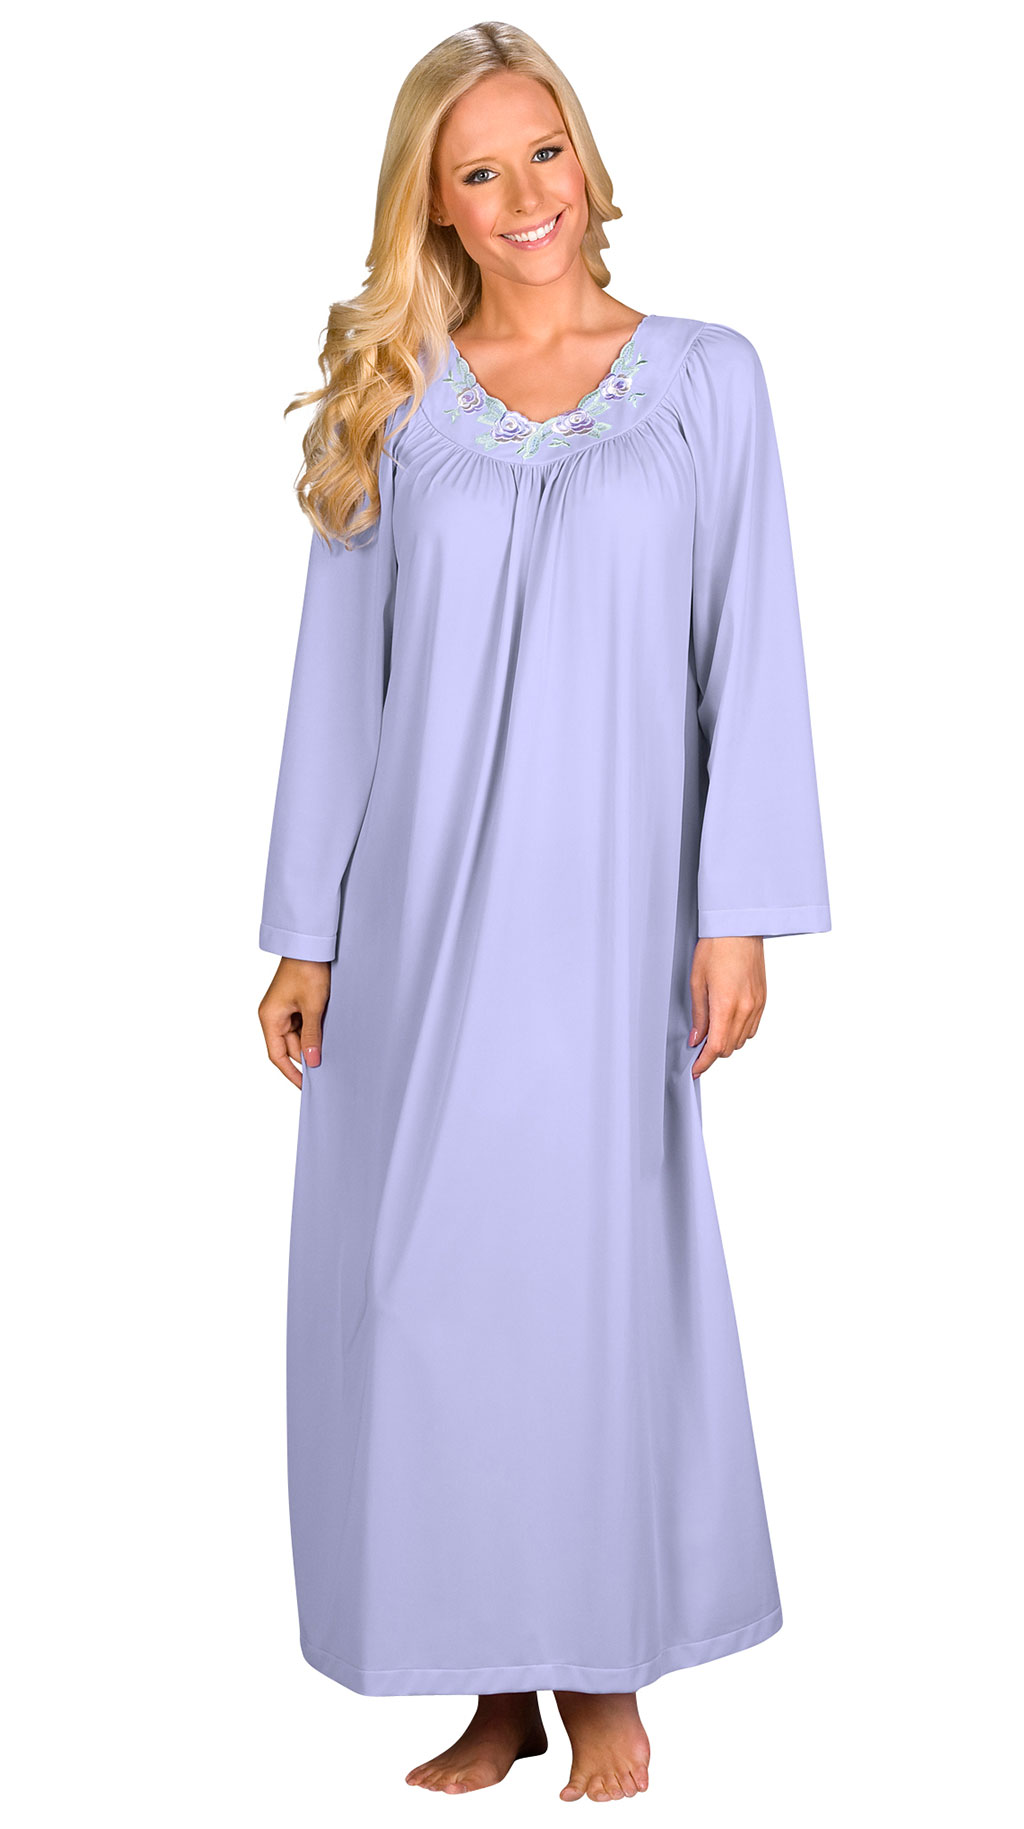 Floor Length Nightgowns _Other dresses_dressesss